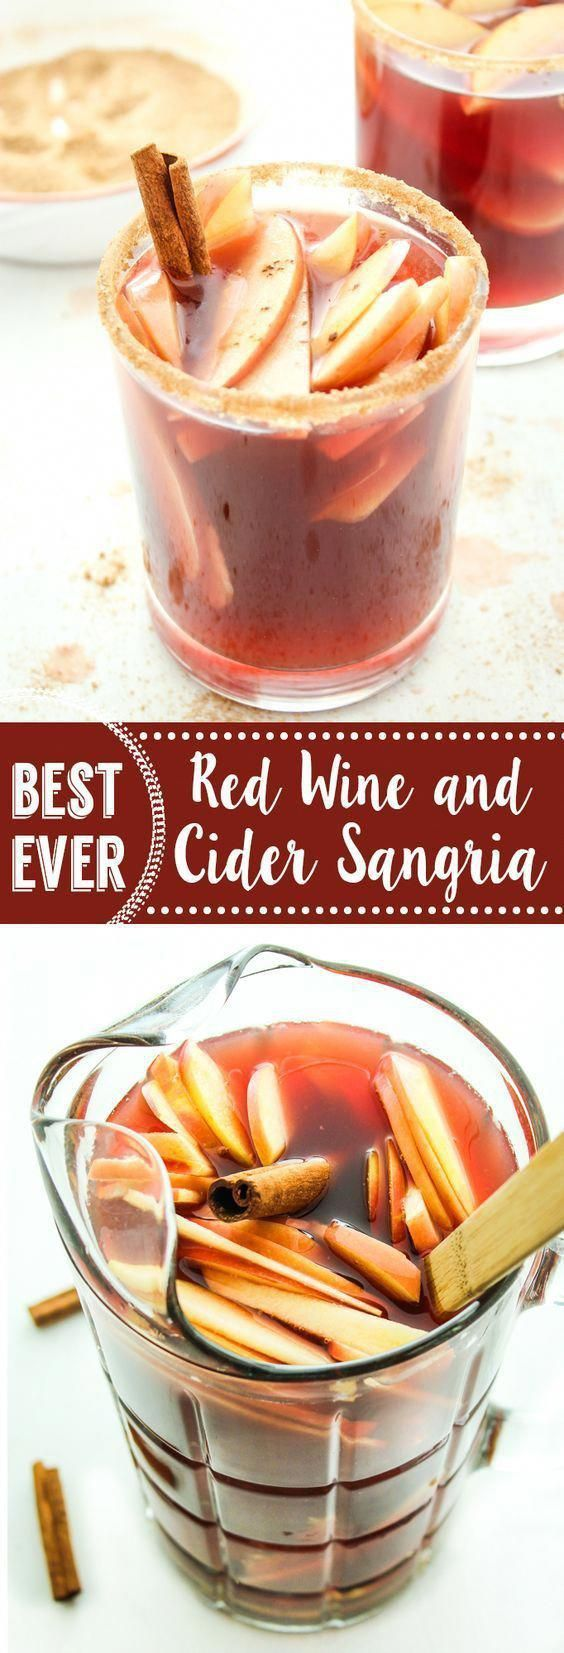 The Best Wine Deals For Your Perfect Fall Sangria Domestic Blonde Apple Cider Sangria Cider Sangria Fall Sangria Recipes